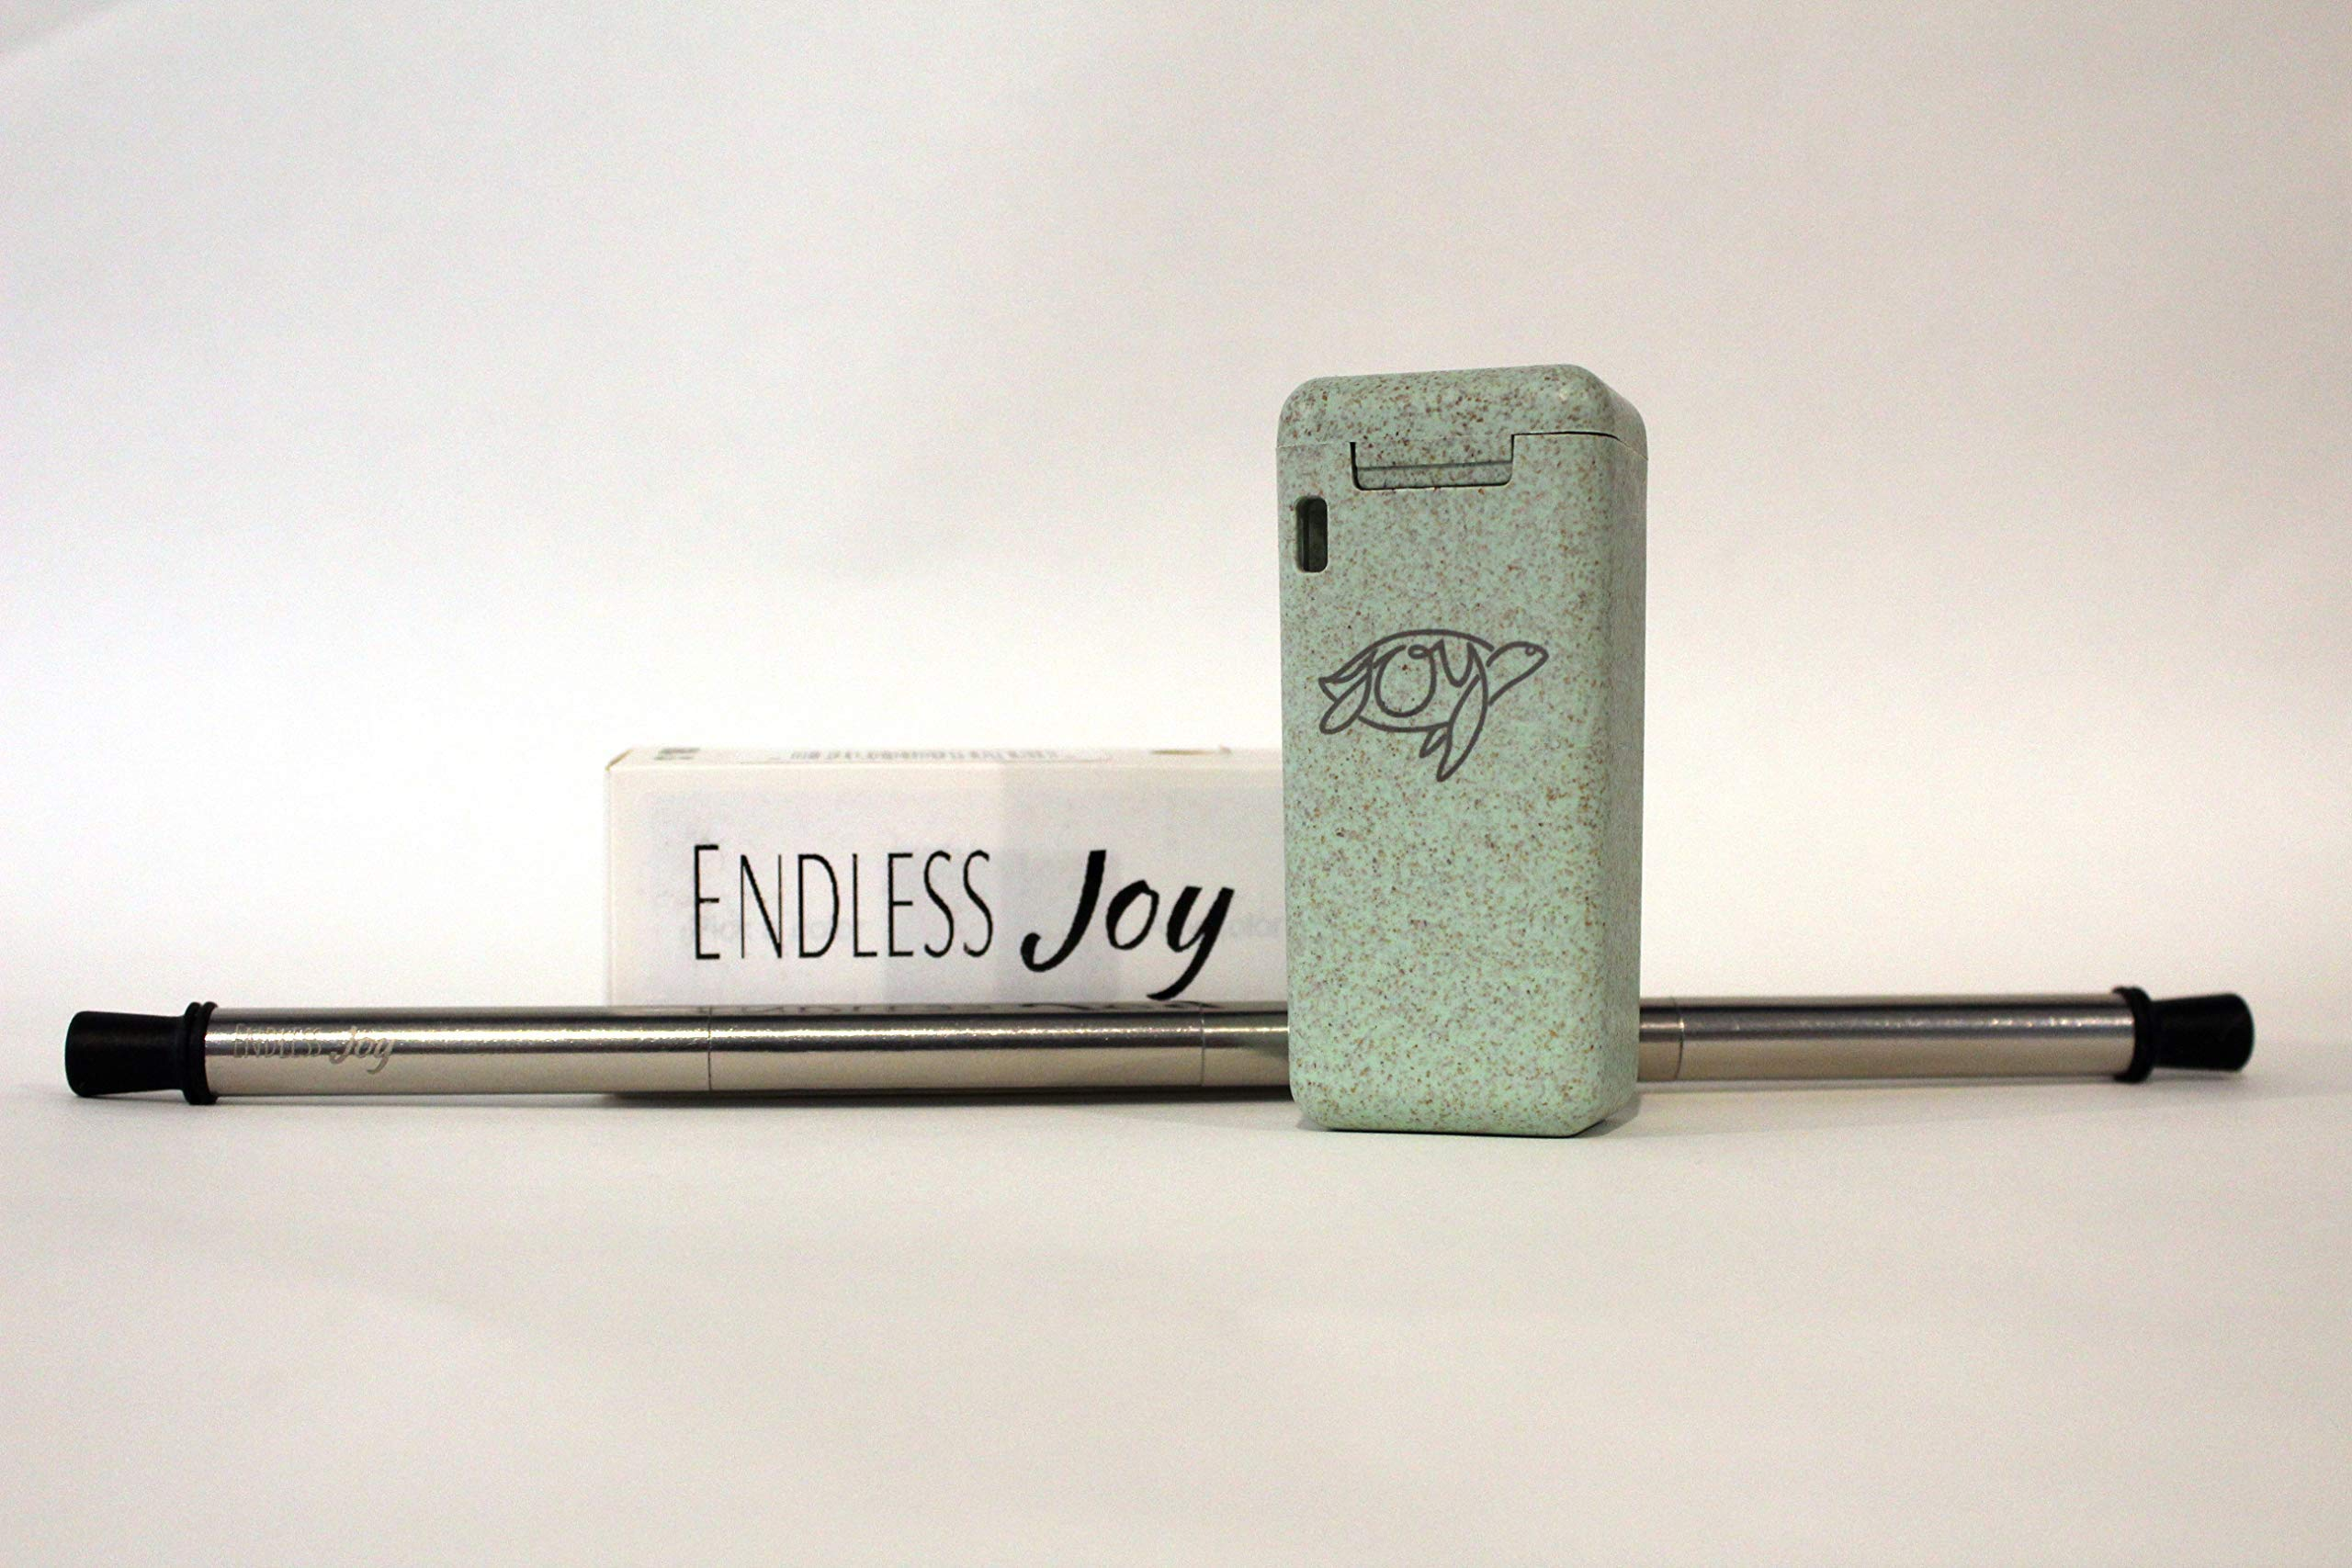 Stainless Steel Straw-Collapsible-Reusable-Portable and ECO Friendly! by Endless Joy